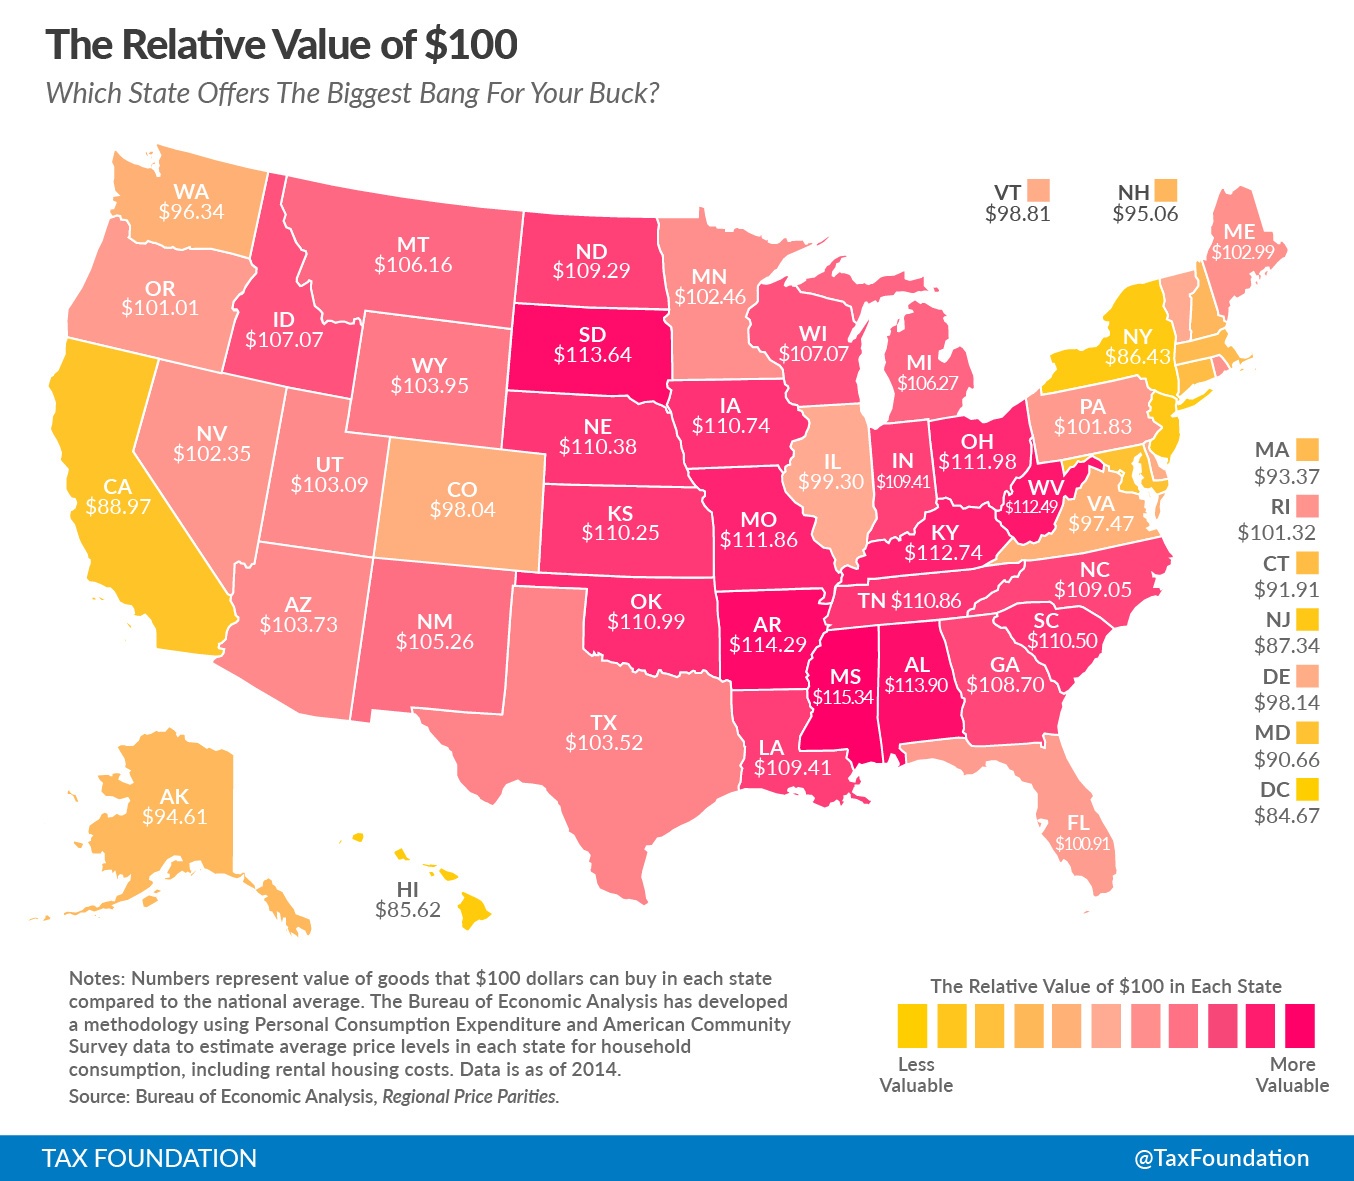 The real value of $100 in each state.